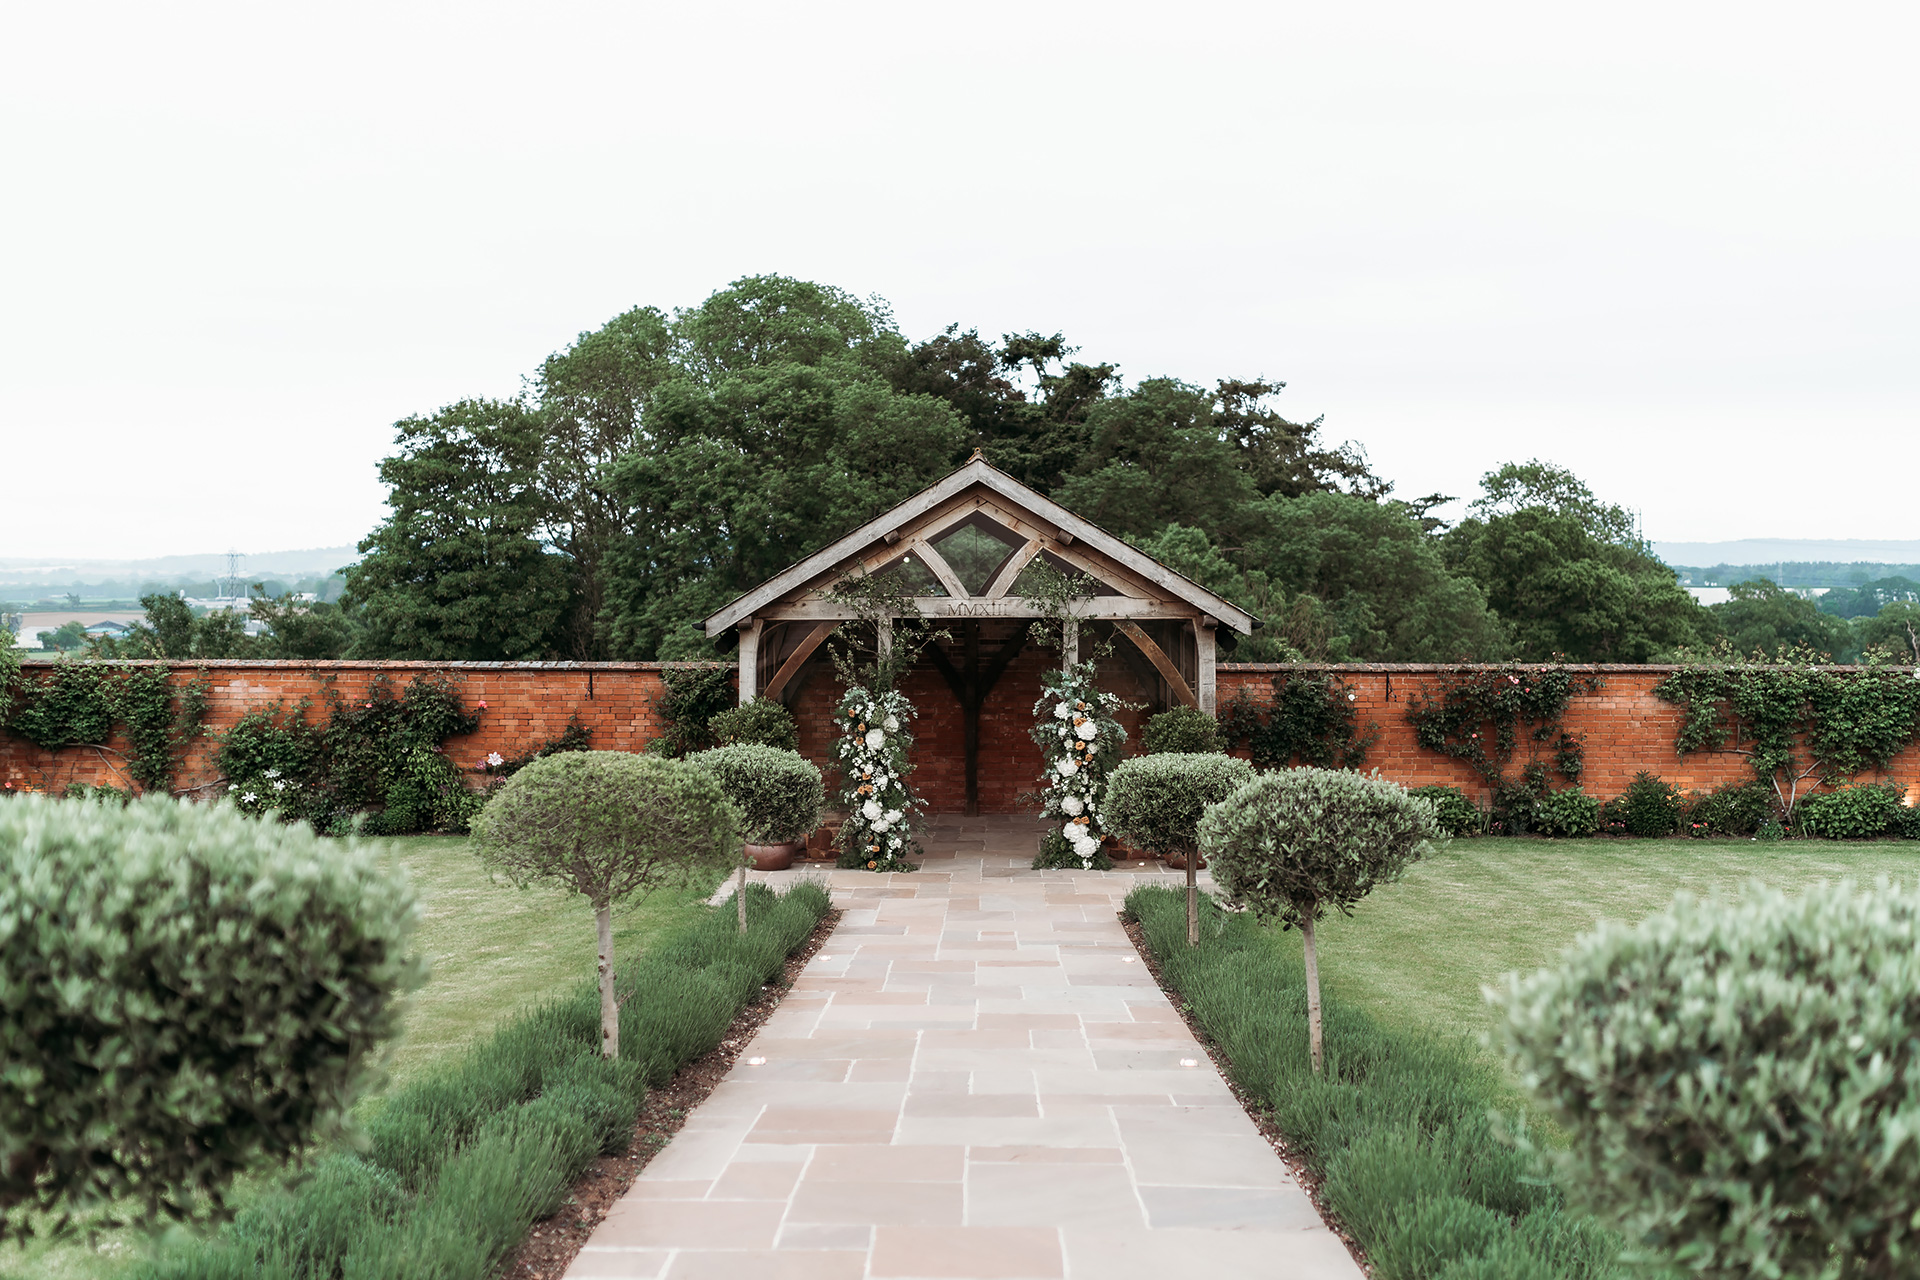 The Walled Garden at Upton Barn | Image by Kamila Nowak Photography